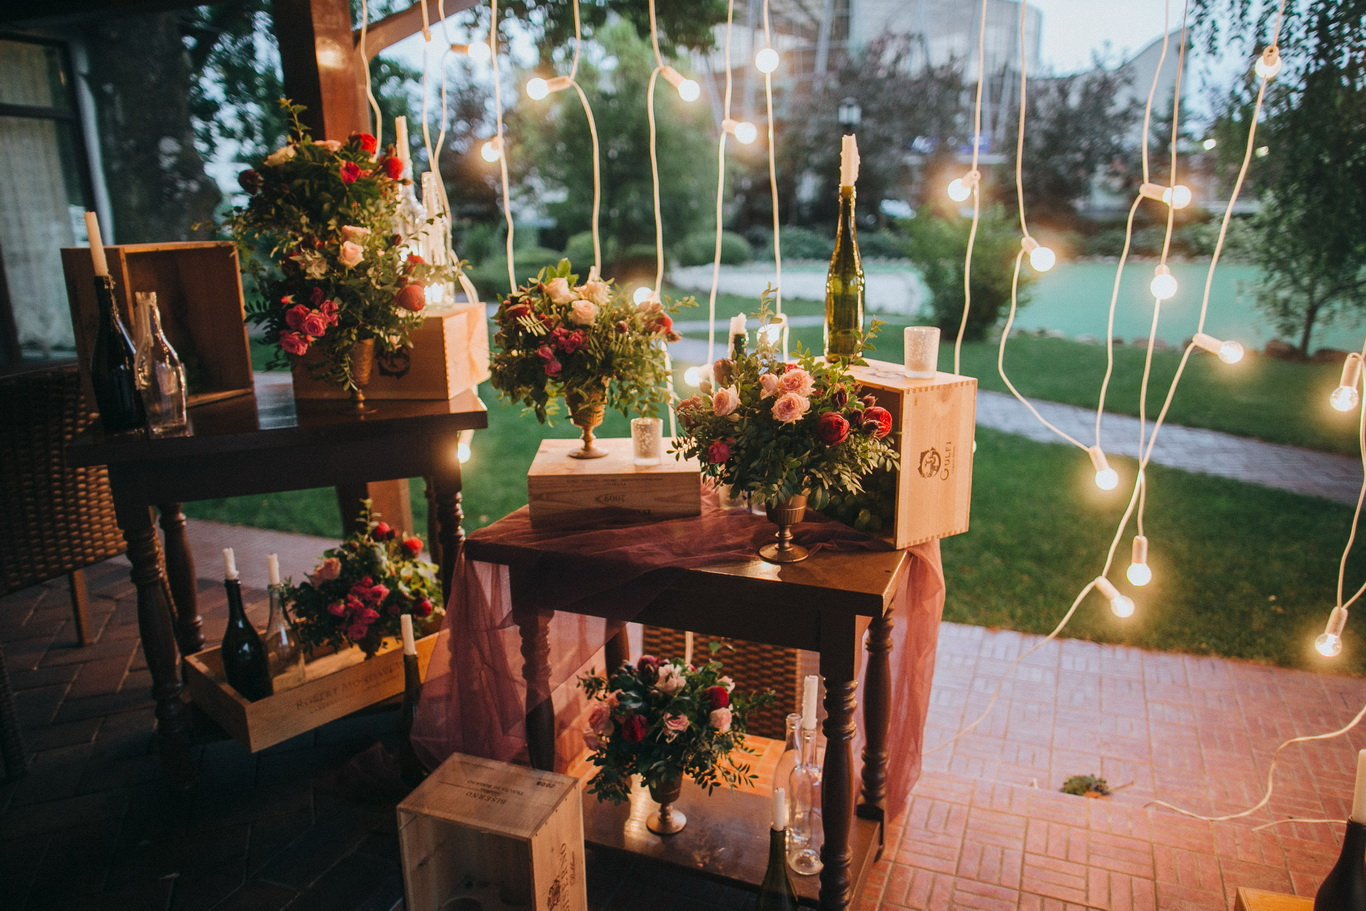 DinaVasya_ApplePieWeddings_65